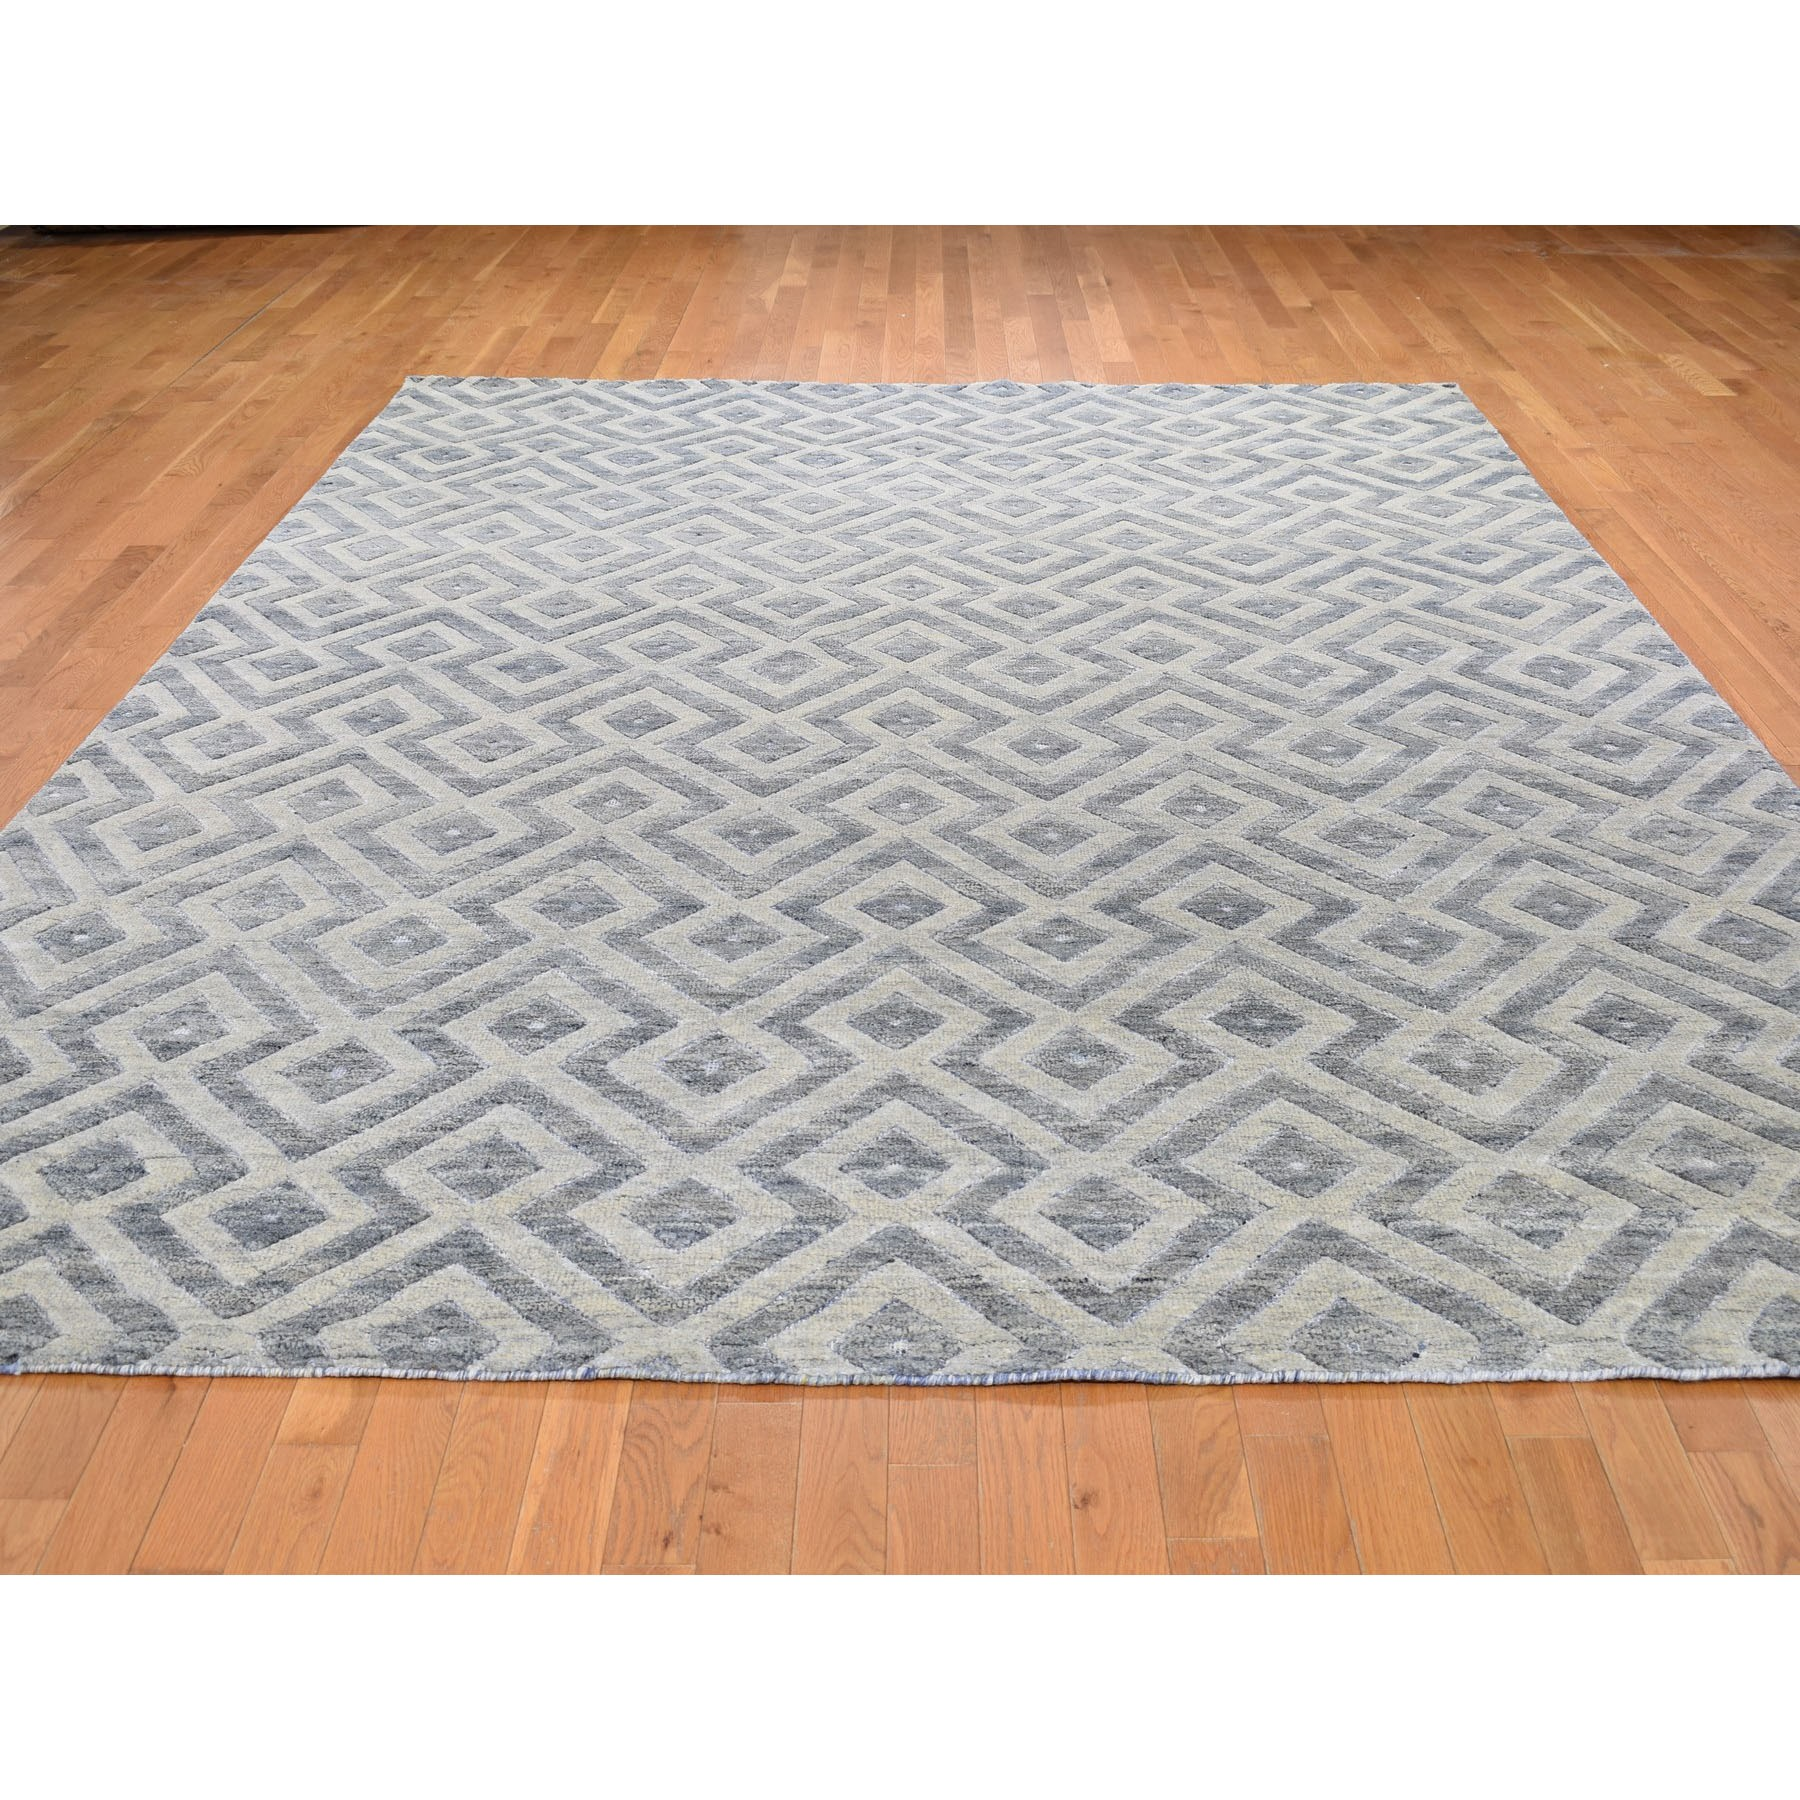 "8'10""x11'10"" Blue Pure Wool Geometric Design Hand Knotted Modern Thick And Plush Oriental Rug"